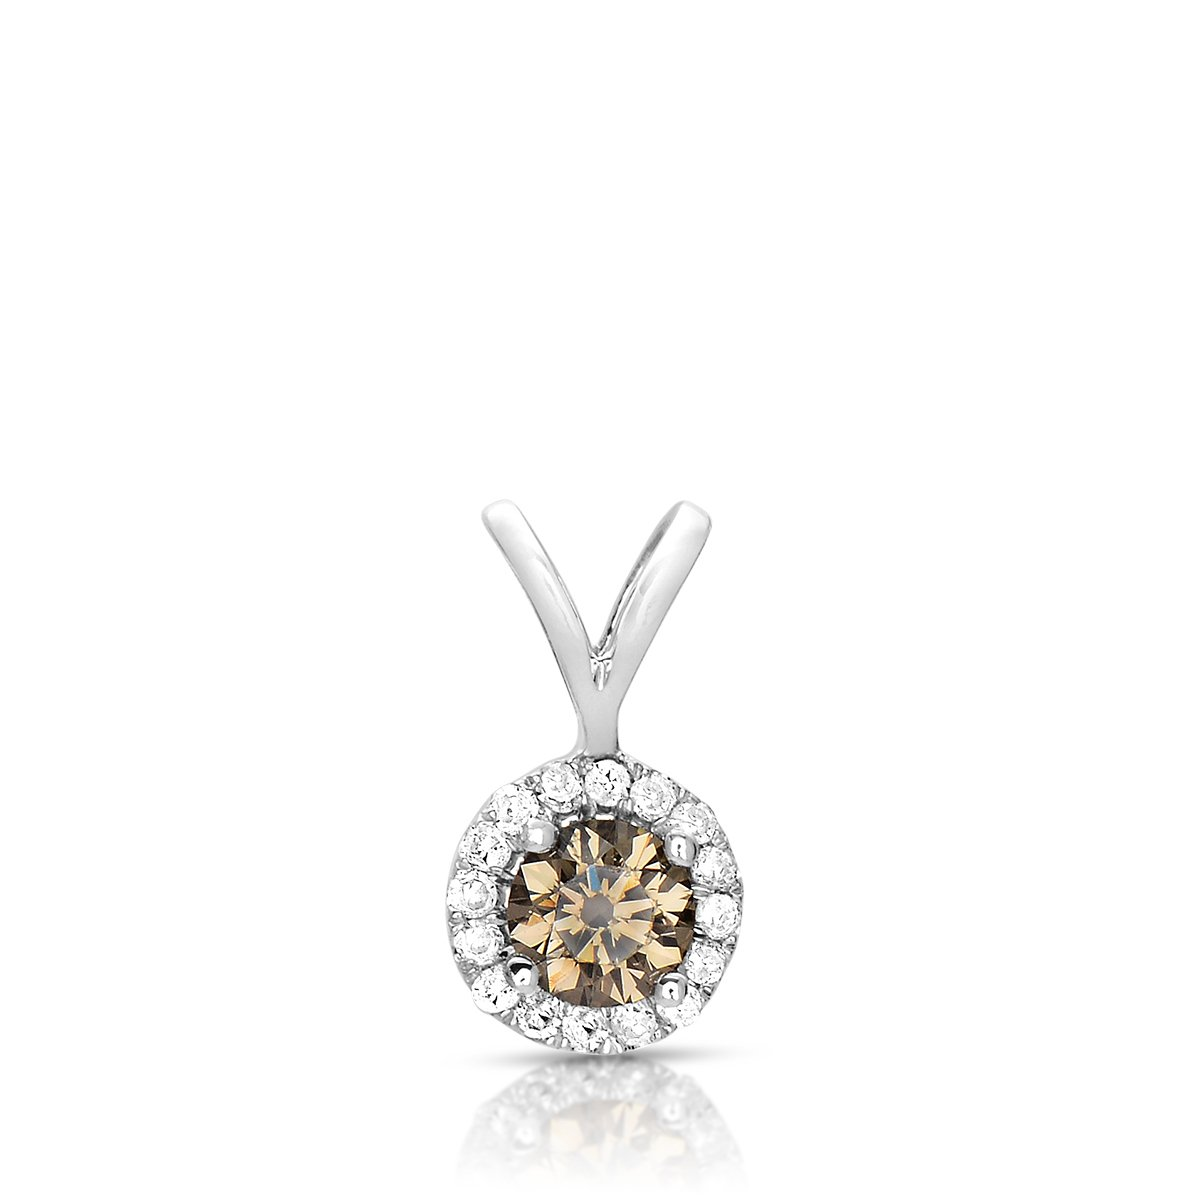 0.25 ct Chocolate Brown Diamond Halo 14k White Gold Pendant Necklace Set (K1295-025WBR)